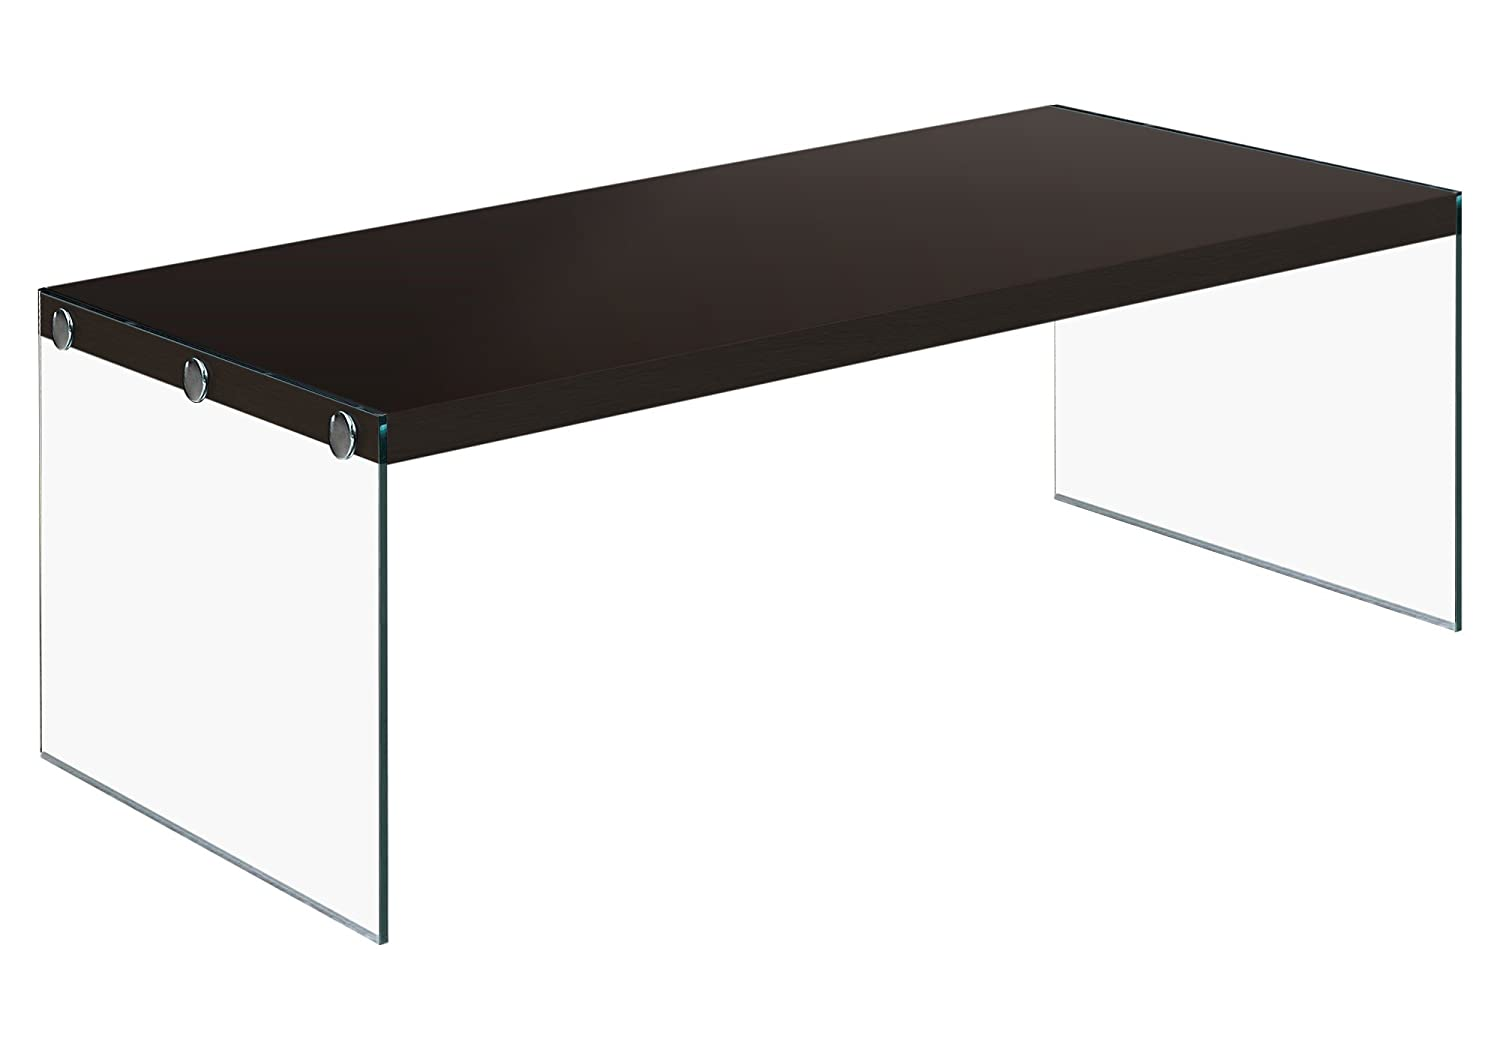 Monarch Specialties I 3280, Coffee Table, Tempered Glass, Cappuccino, 44